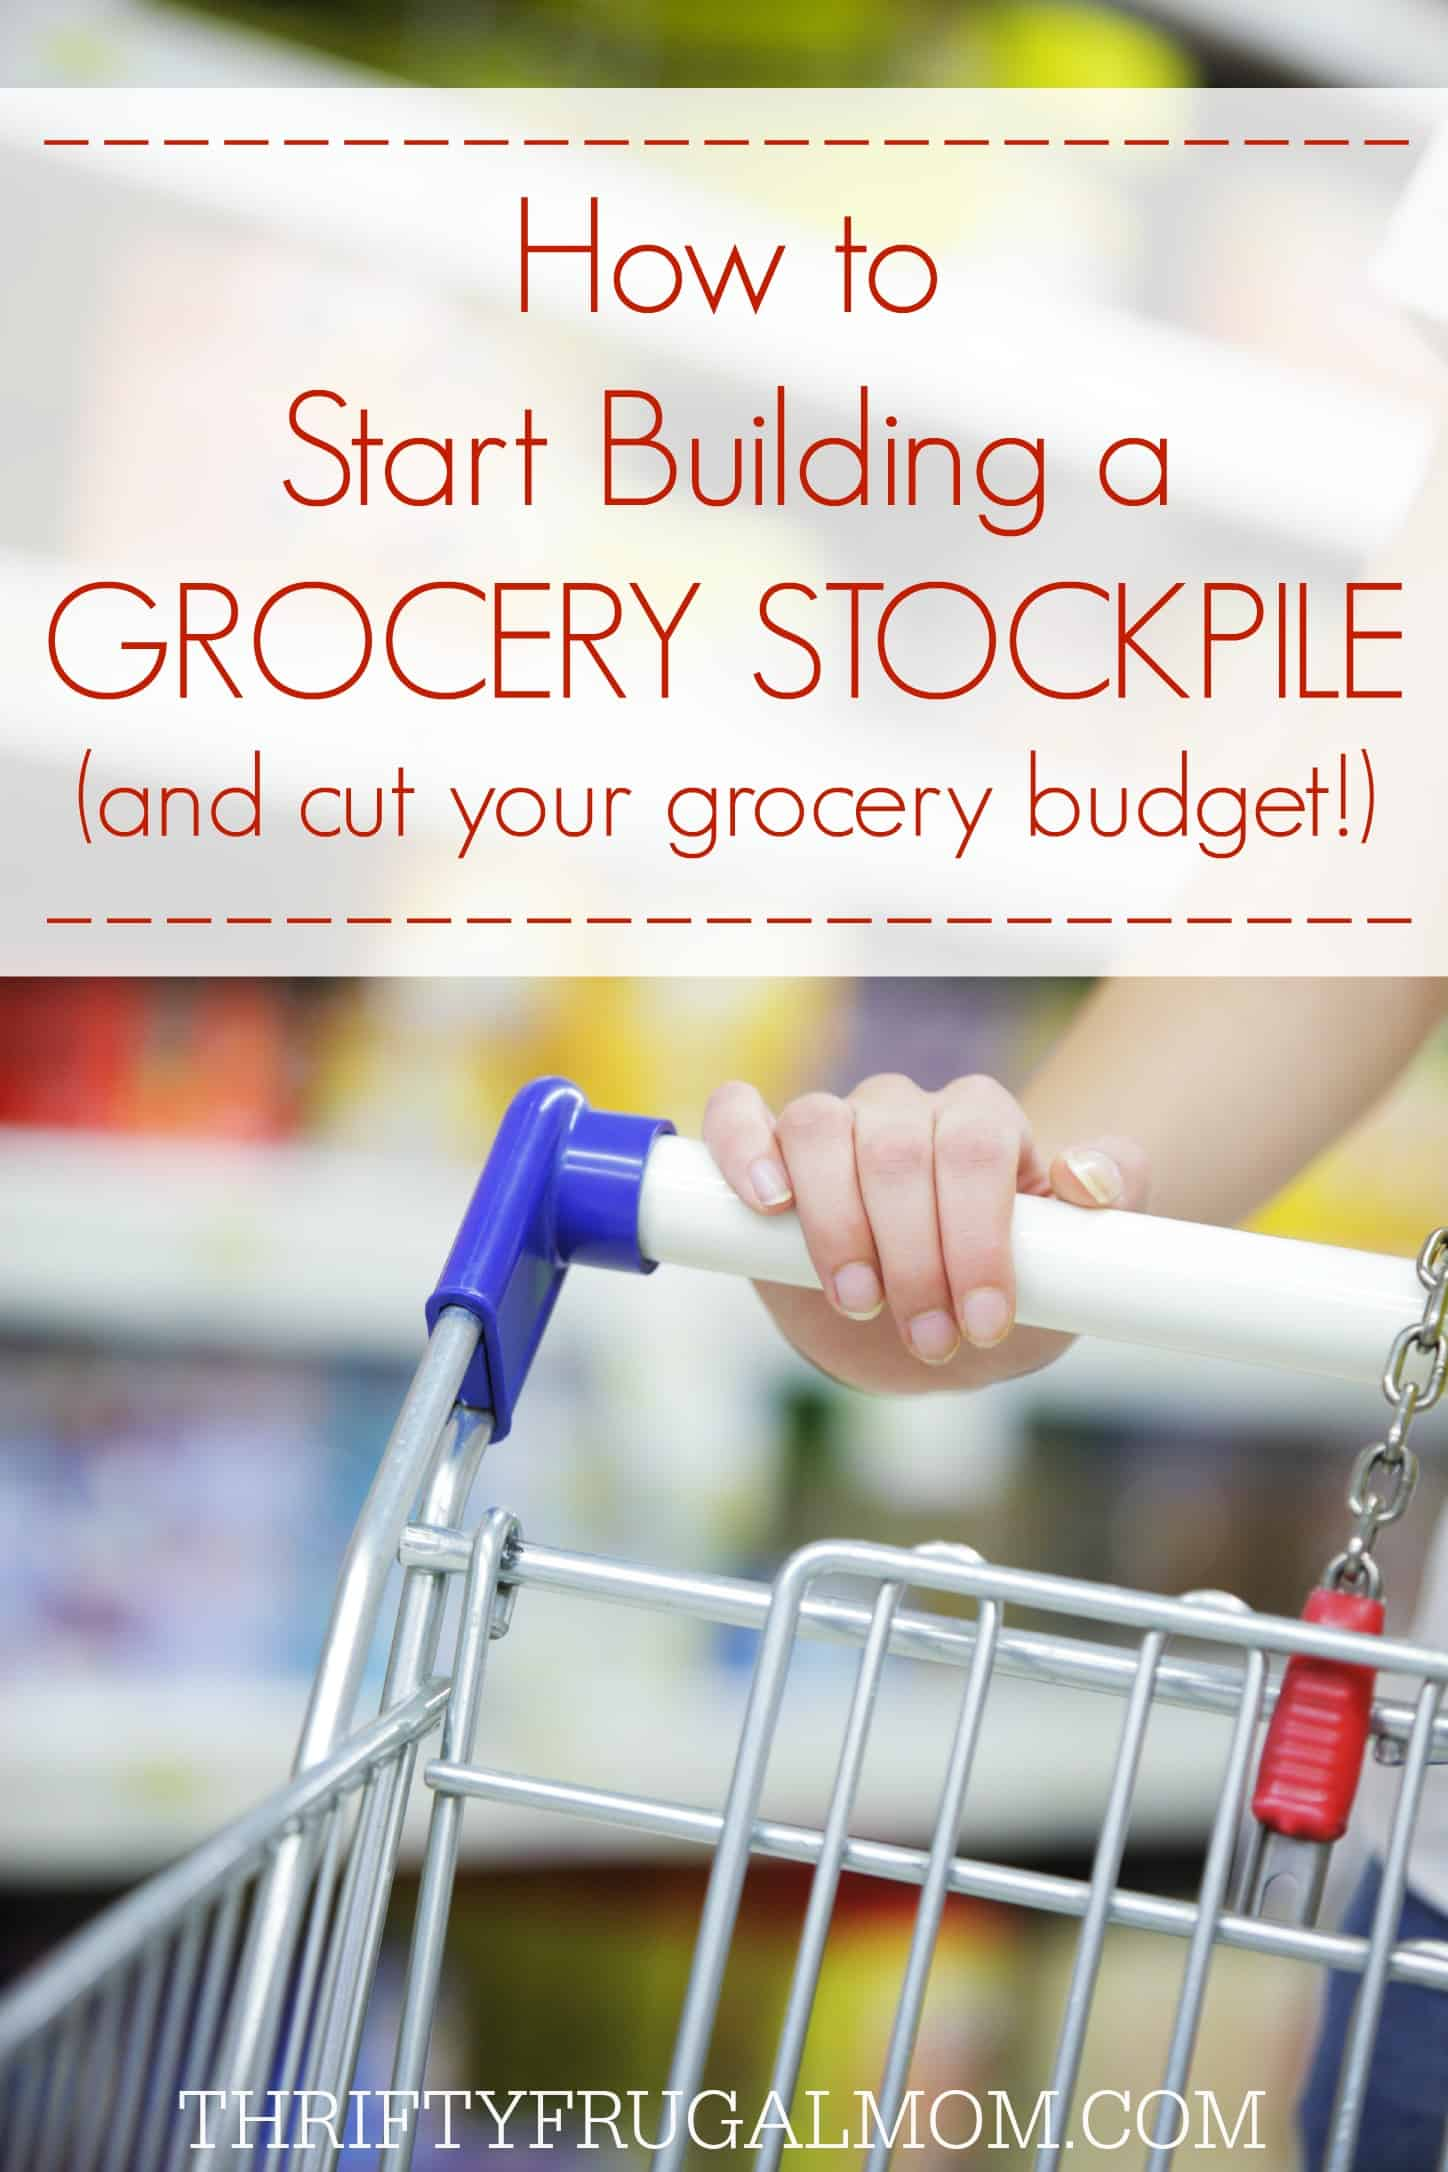 Learn how to stockpile food on a budget! Stockpiling allows us to have a $200/mo. grocery budget and can save you money too! These tips will help you get started with your own stockpile.